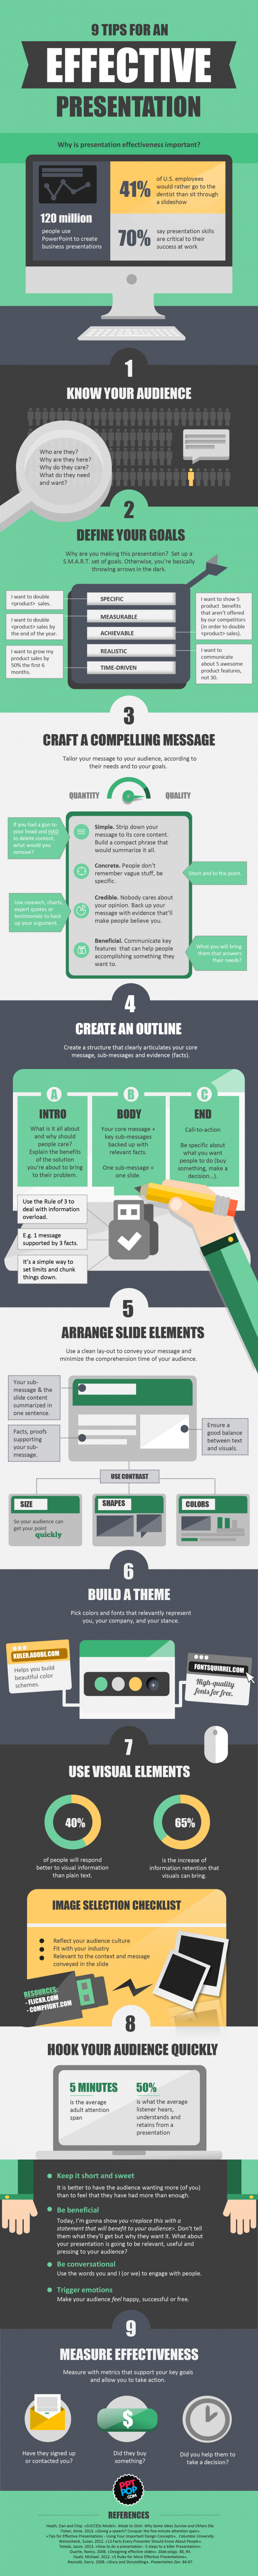 PPTPOP_Presentation_tips_infographic